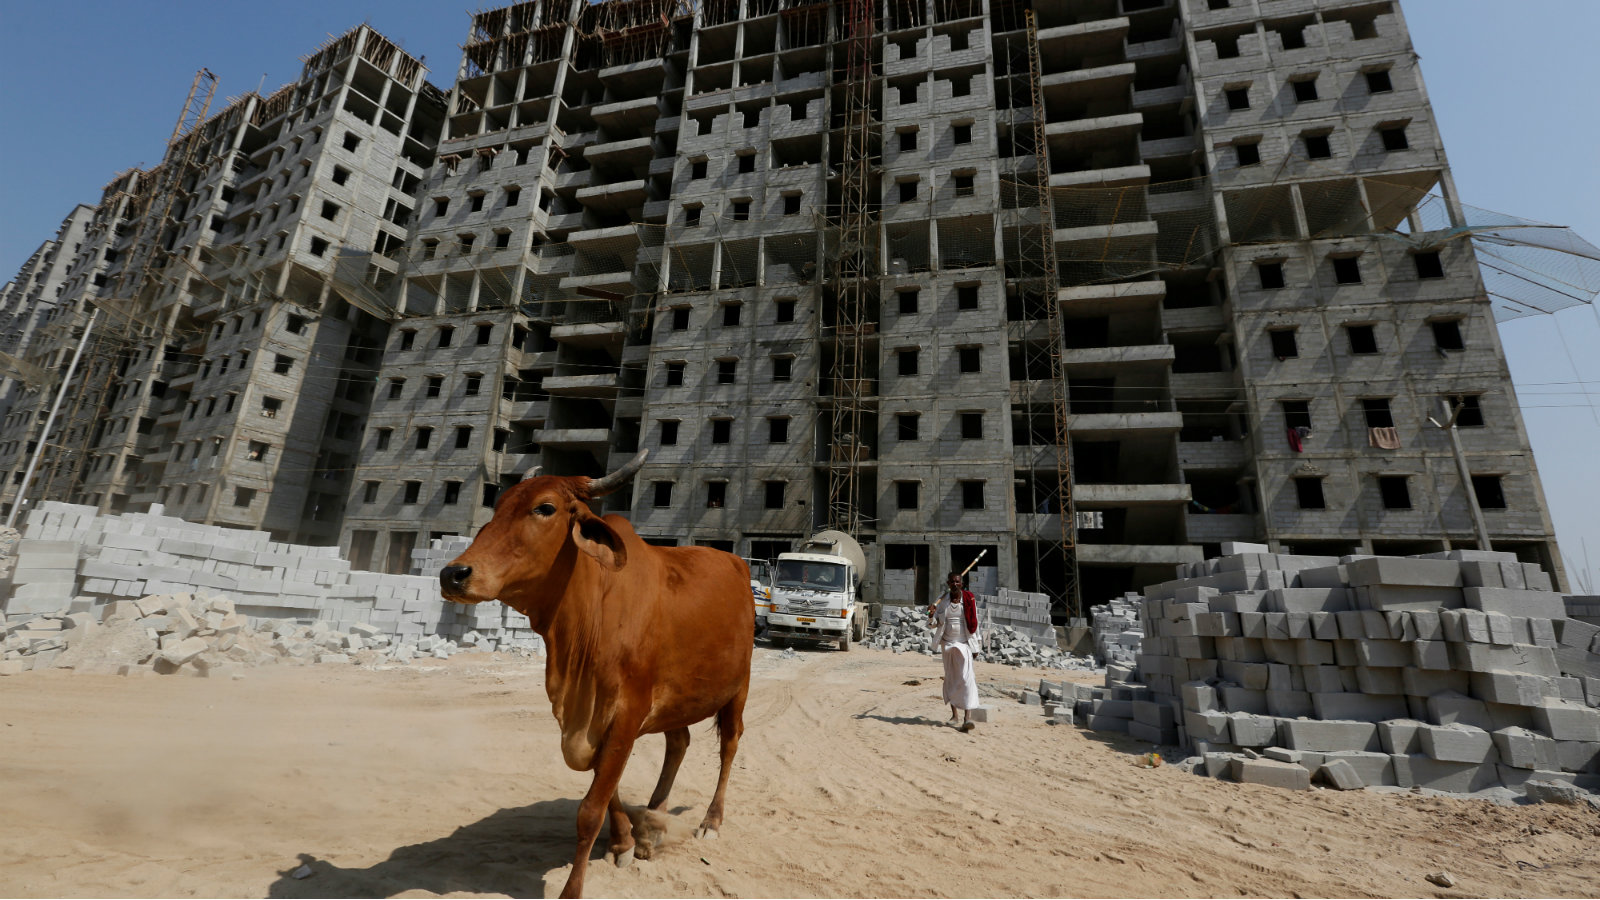 A man walks his cow in front of residential buildings under construction on the outskirts of Ahmedabad, India, February 29, 2016.